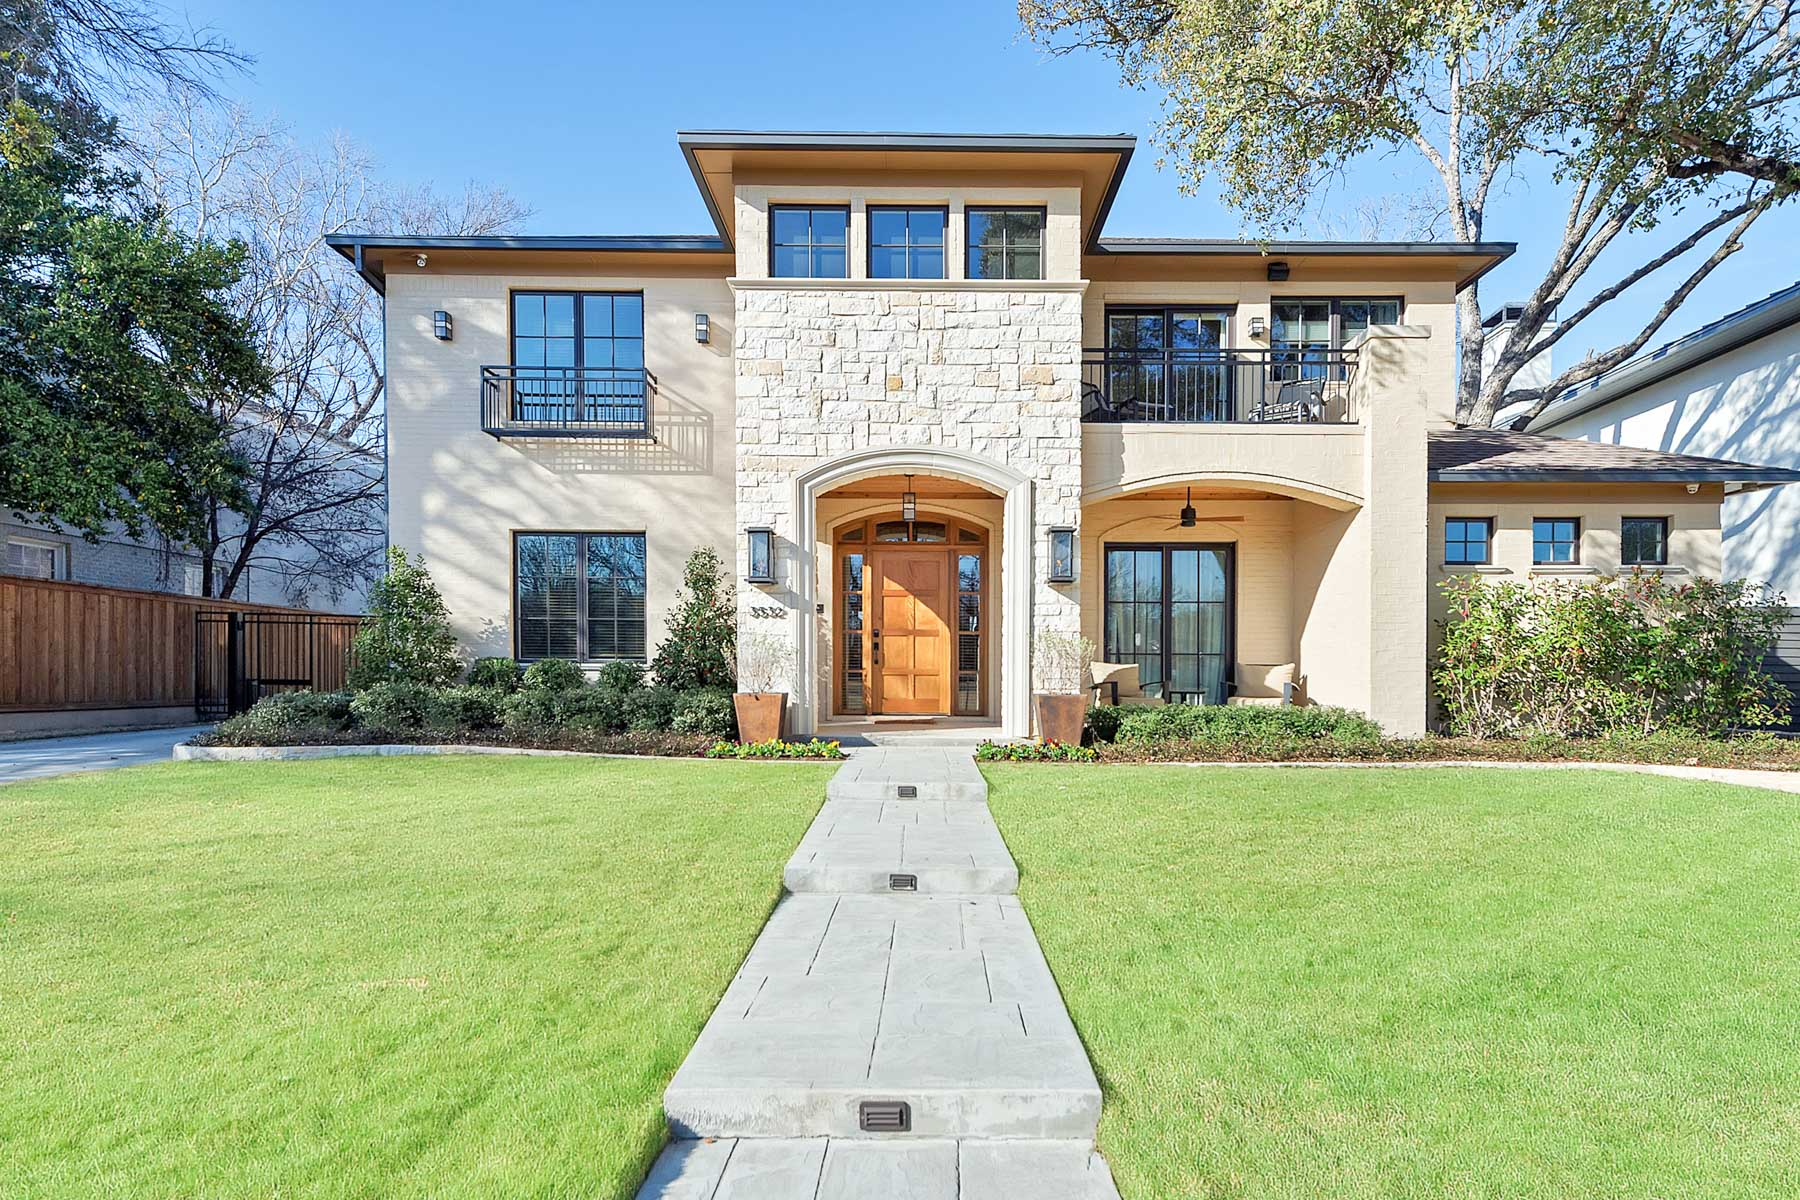 Casa Unifamiliar por un Venta en State of the Art Monticello, Traditional 3532 Dorothy Lane N Fort Worth, Texas, 76107 Estados Unidos